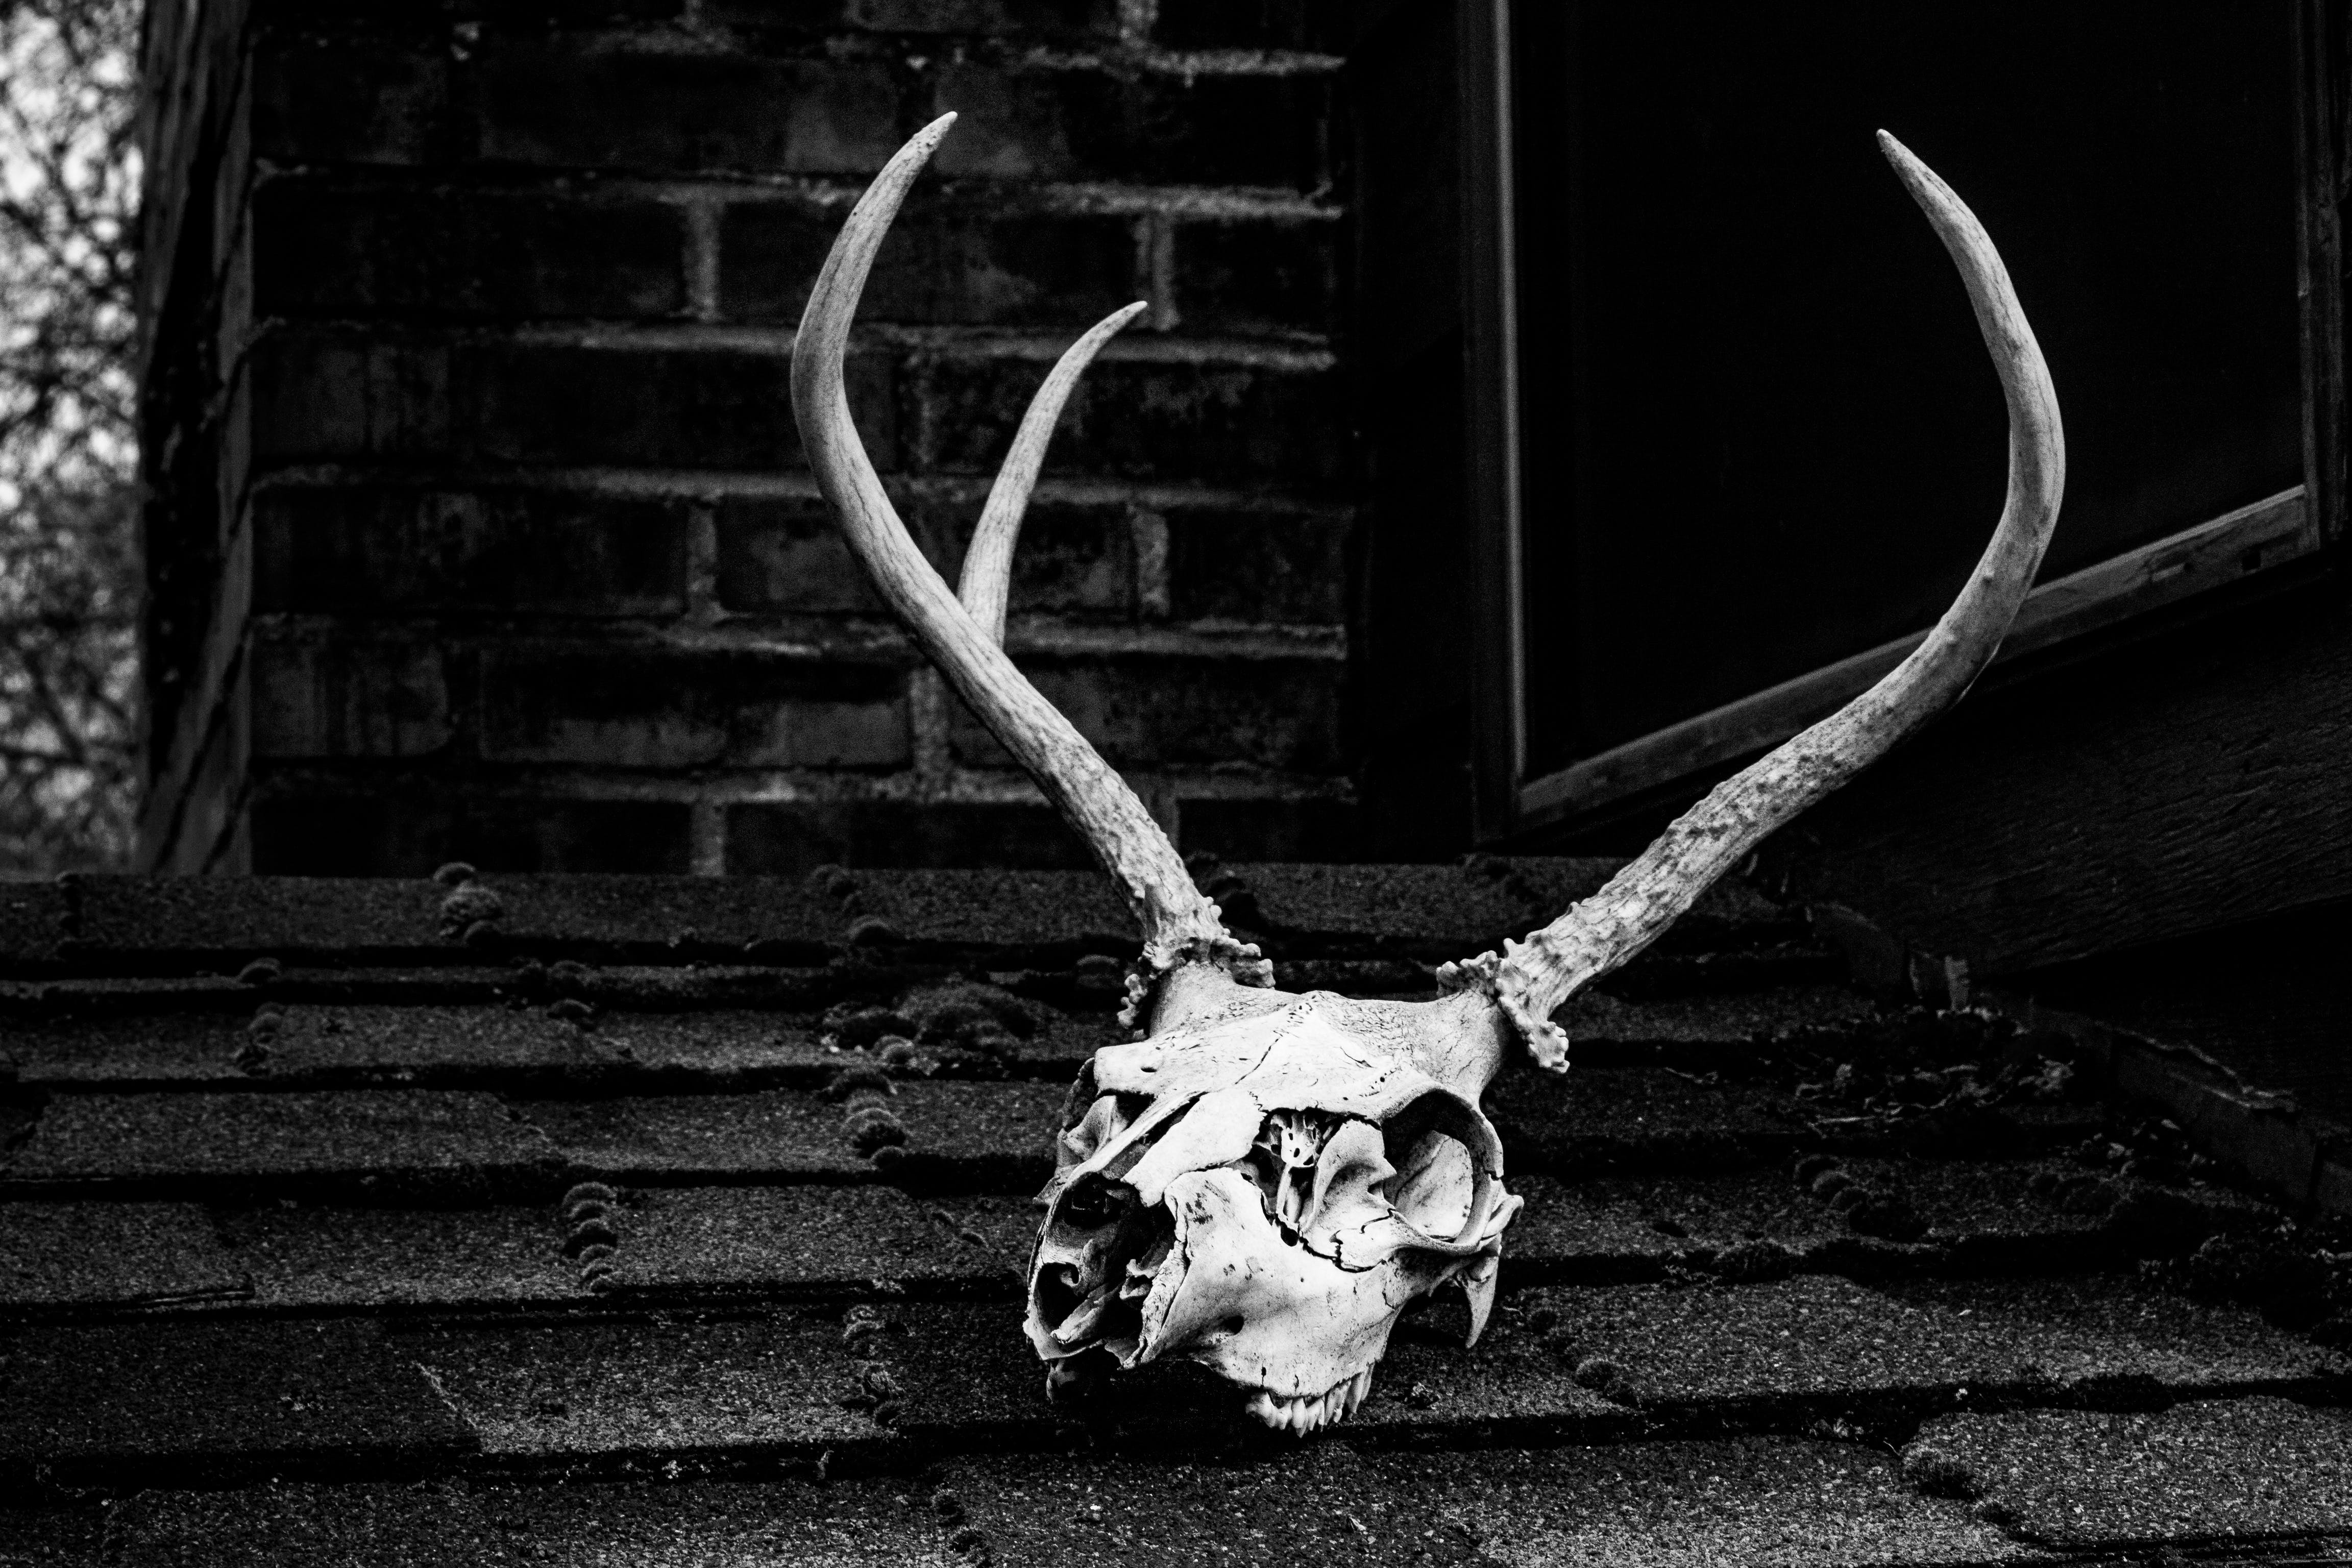 Grayscale Photo of Skull With Antler